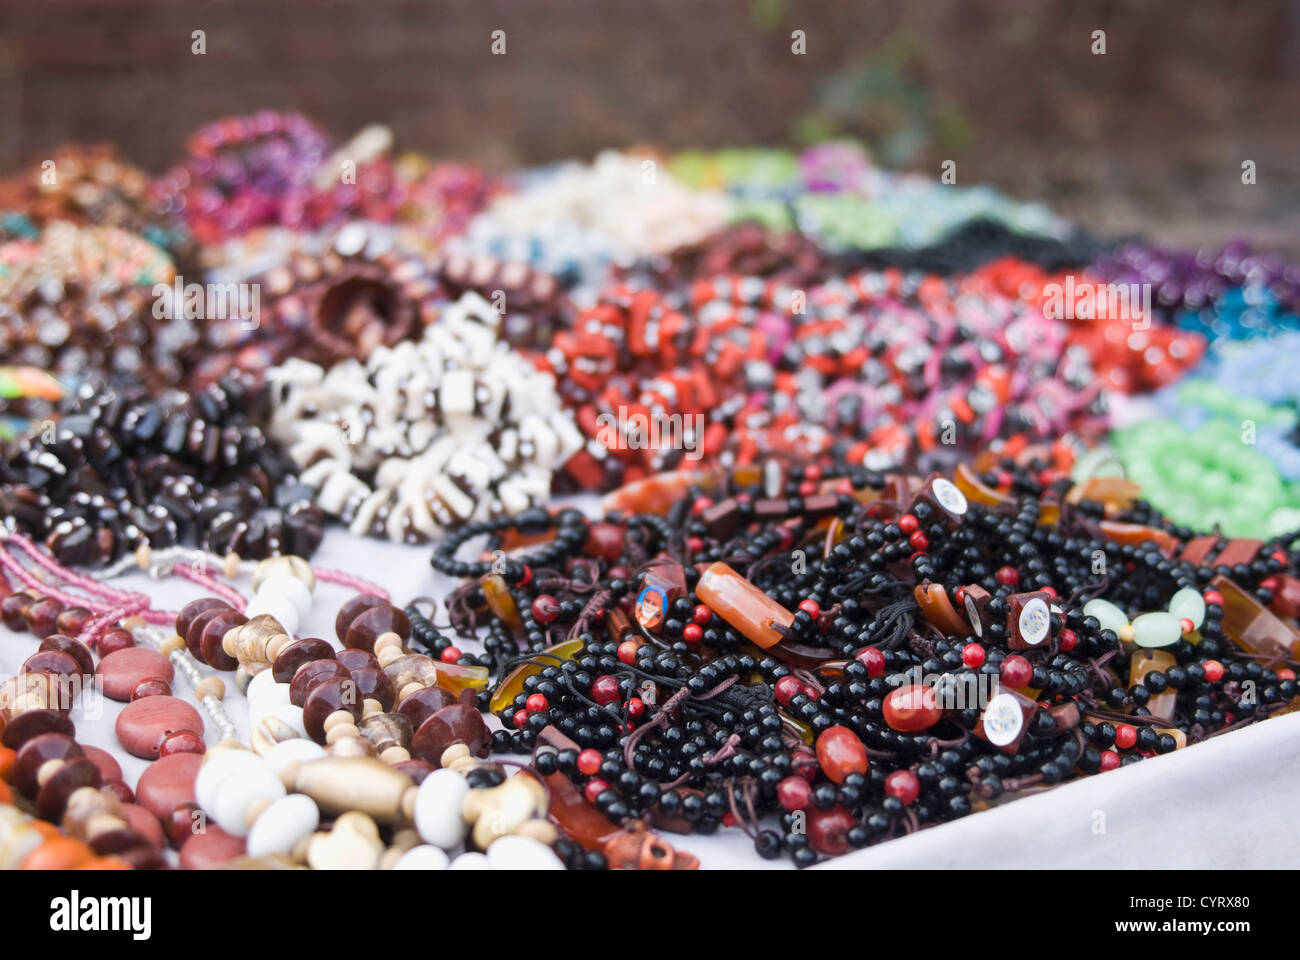 Close Up Of Craft Products At A Market Stall New Delhi India